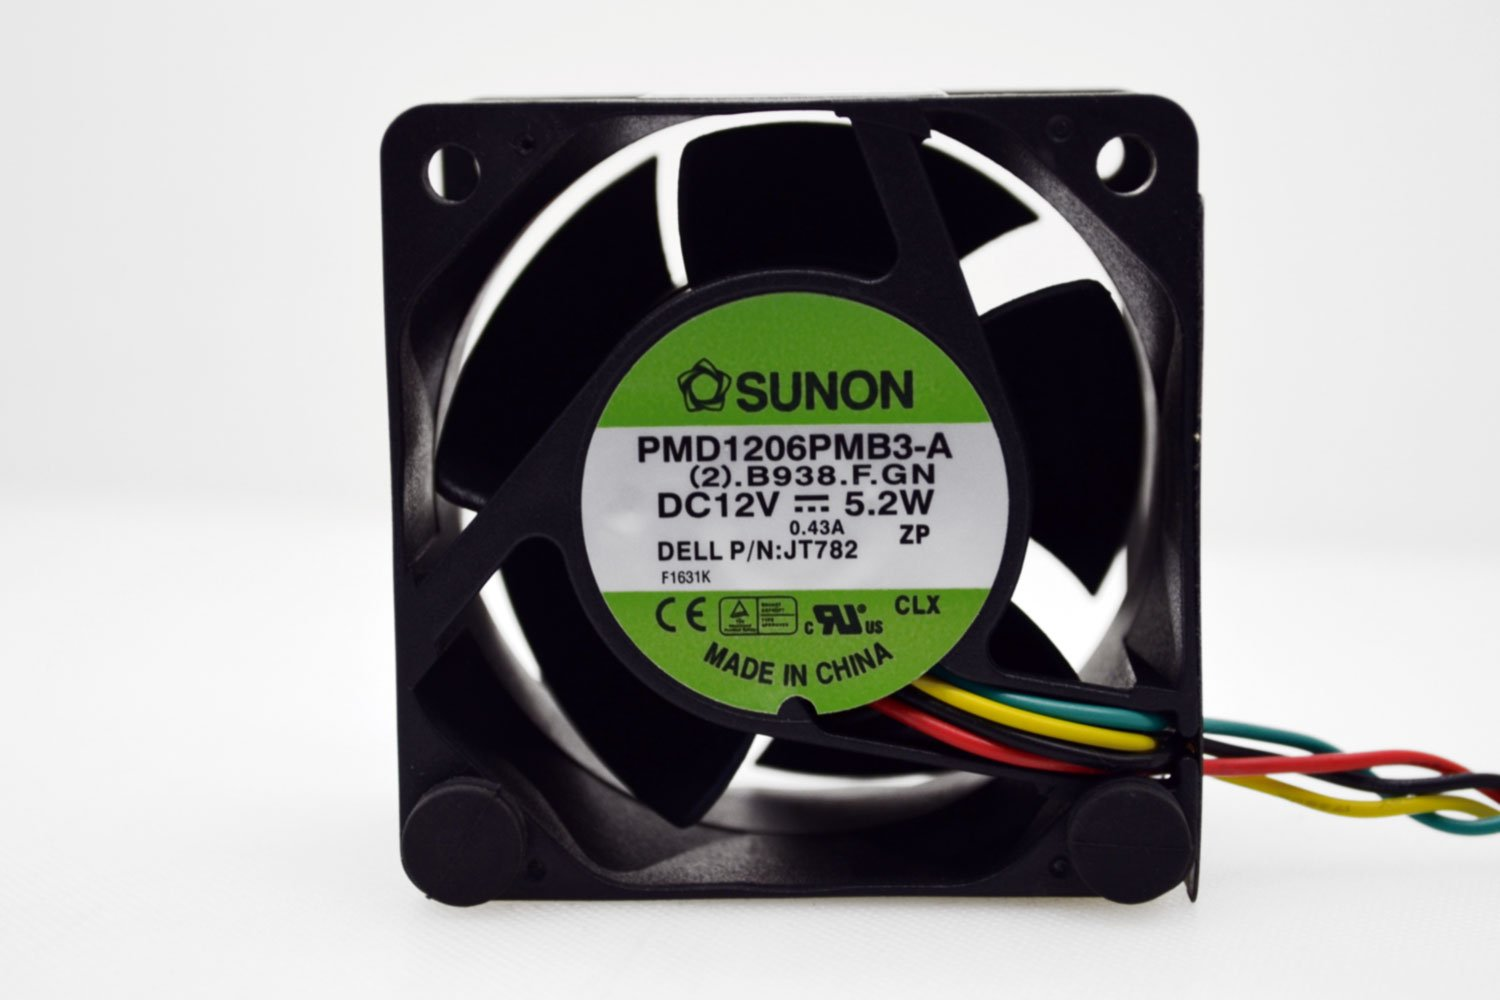 Sunon PMD1206PMB3-A 5.2W Compatible Part Number N5412N 4-Pin Connector 60mm x 60mm x 38mm .B938.F Cooling Fan 12V~.43Amp 2